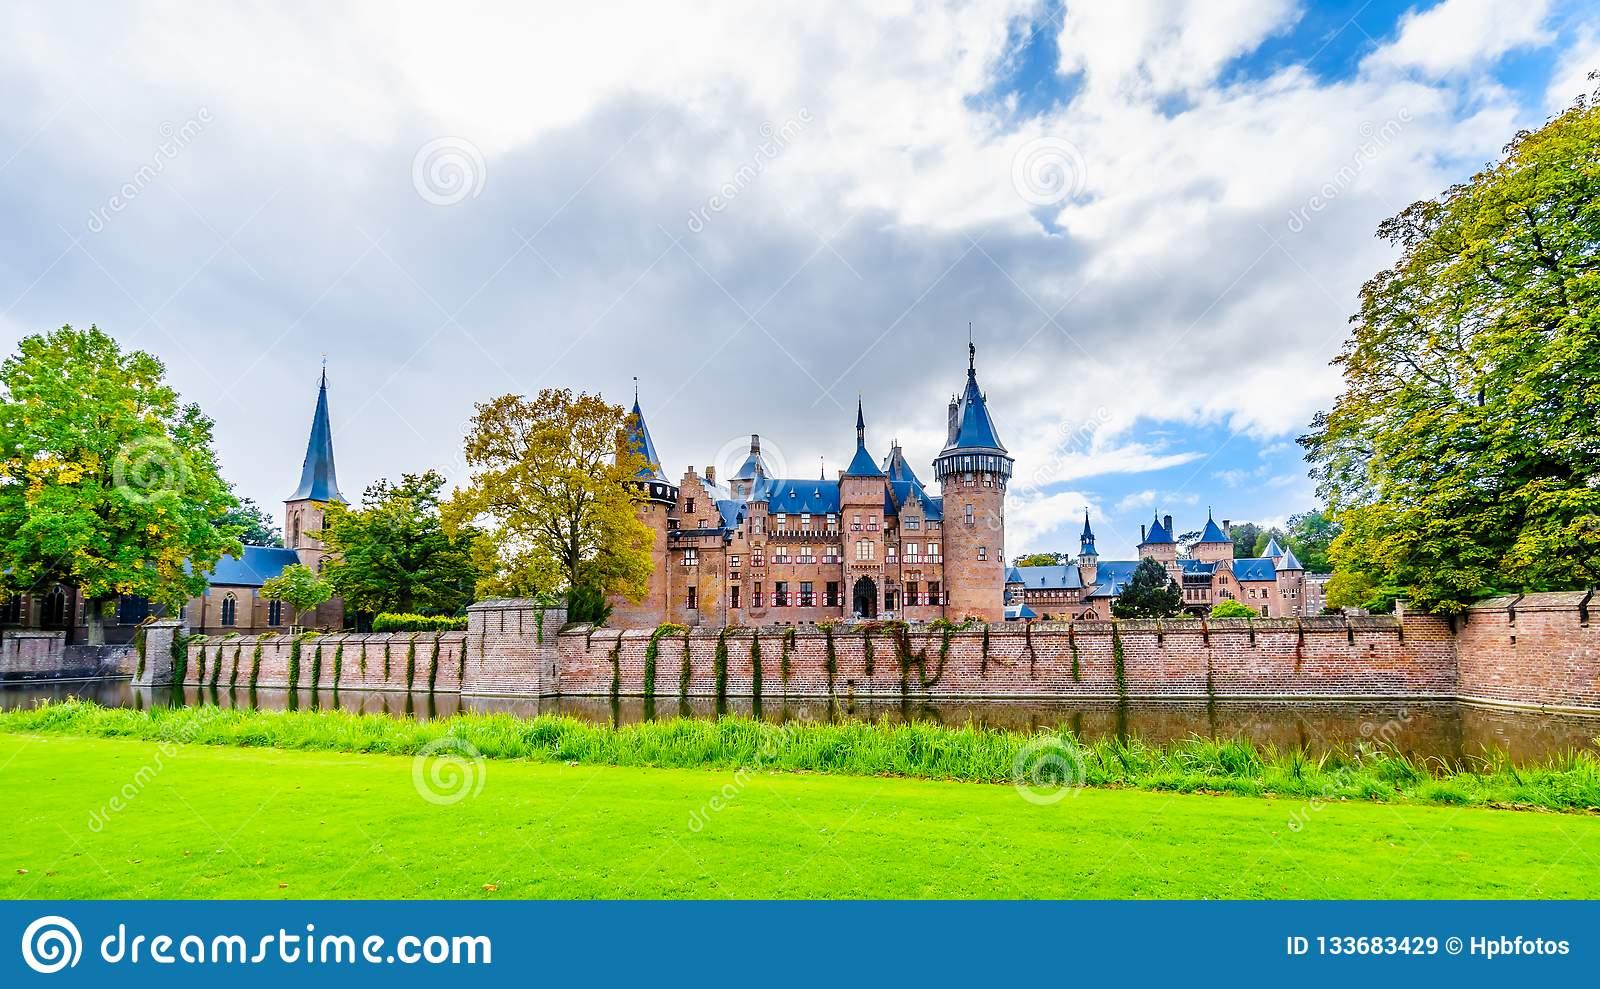 Magnificent Castle De Haar surrounded by a Moat and Beautiful Gardens. A 14th century Castle and restored in the late 19th century